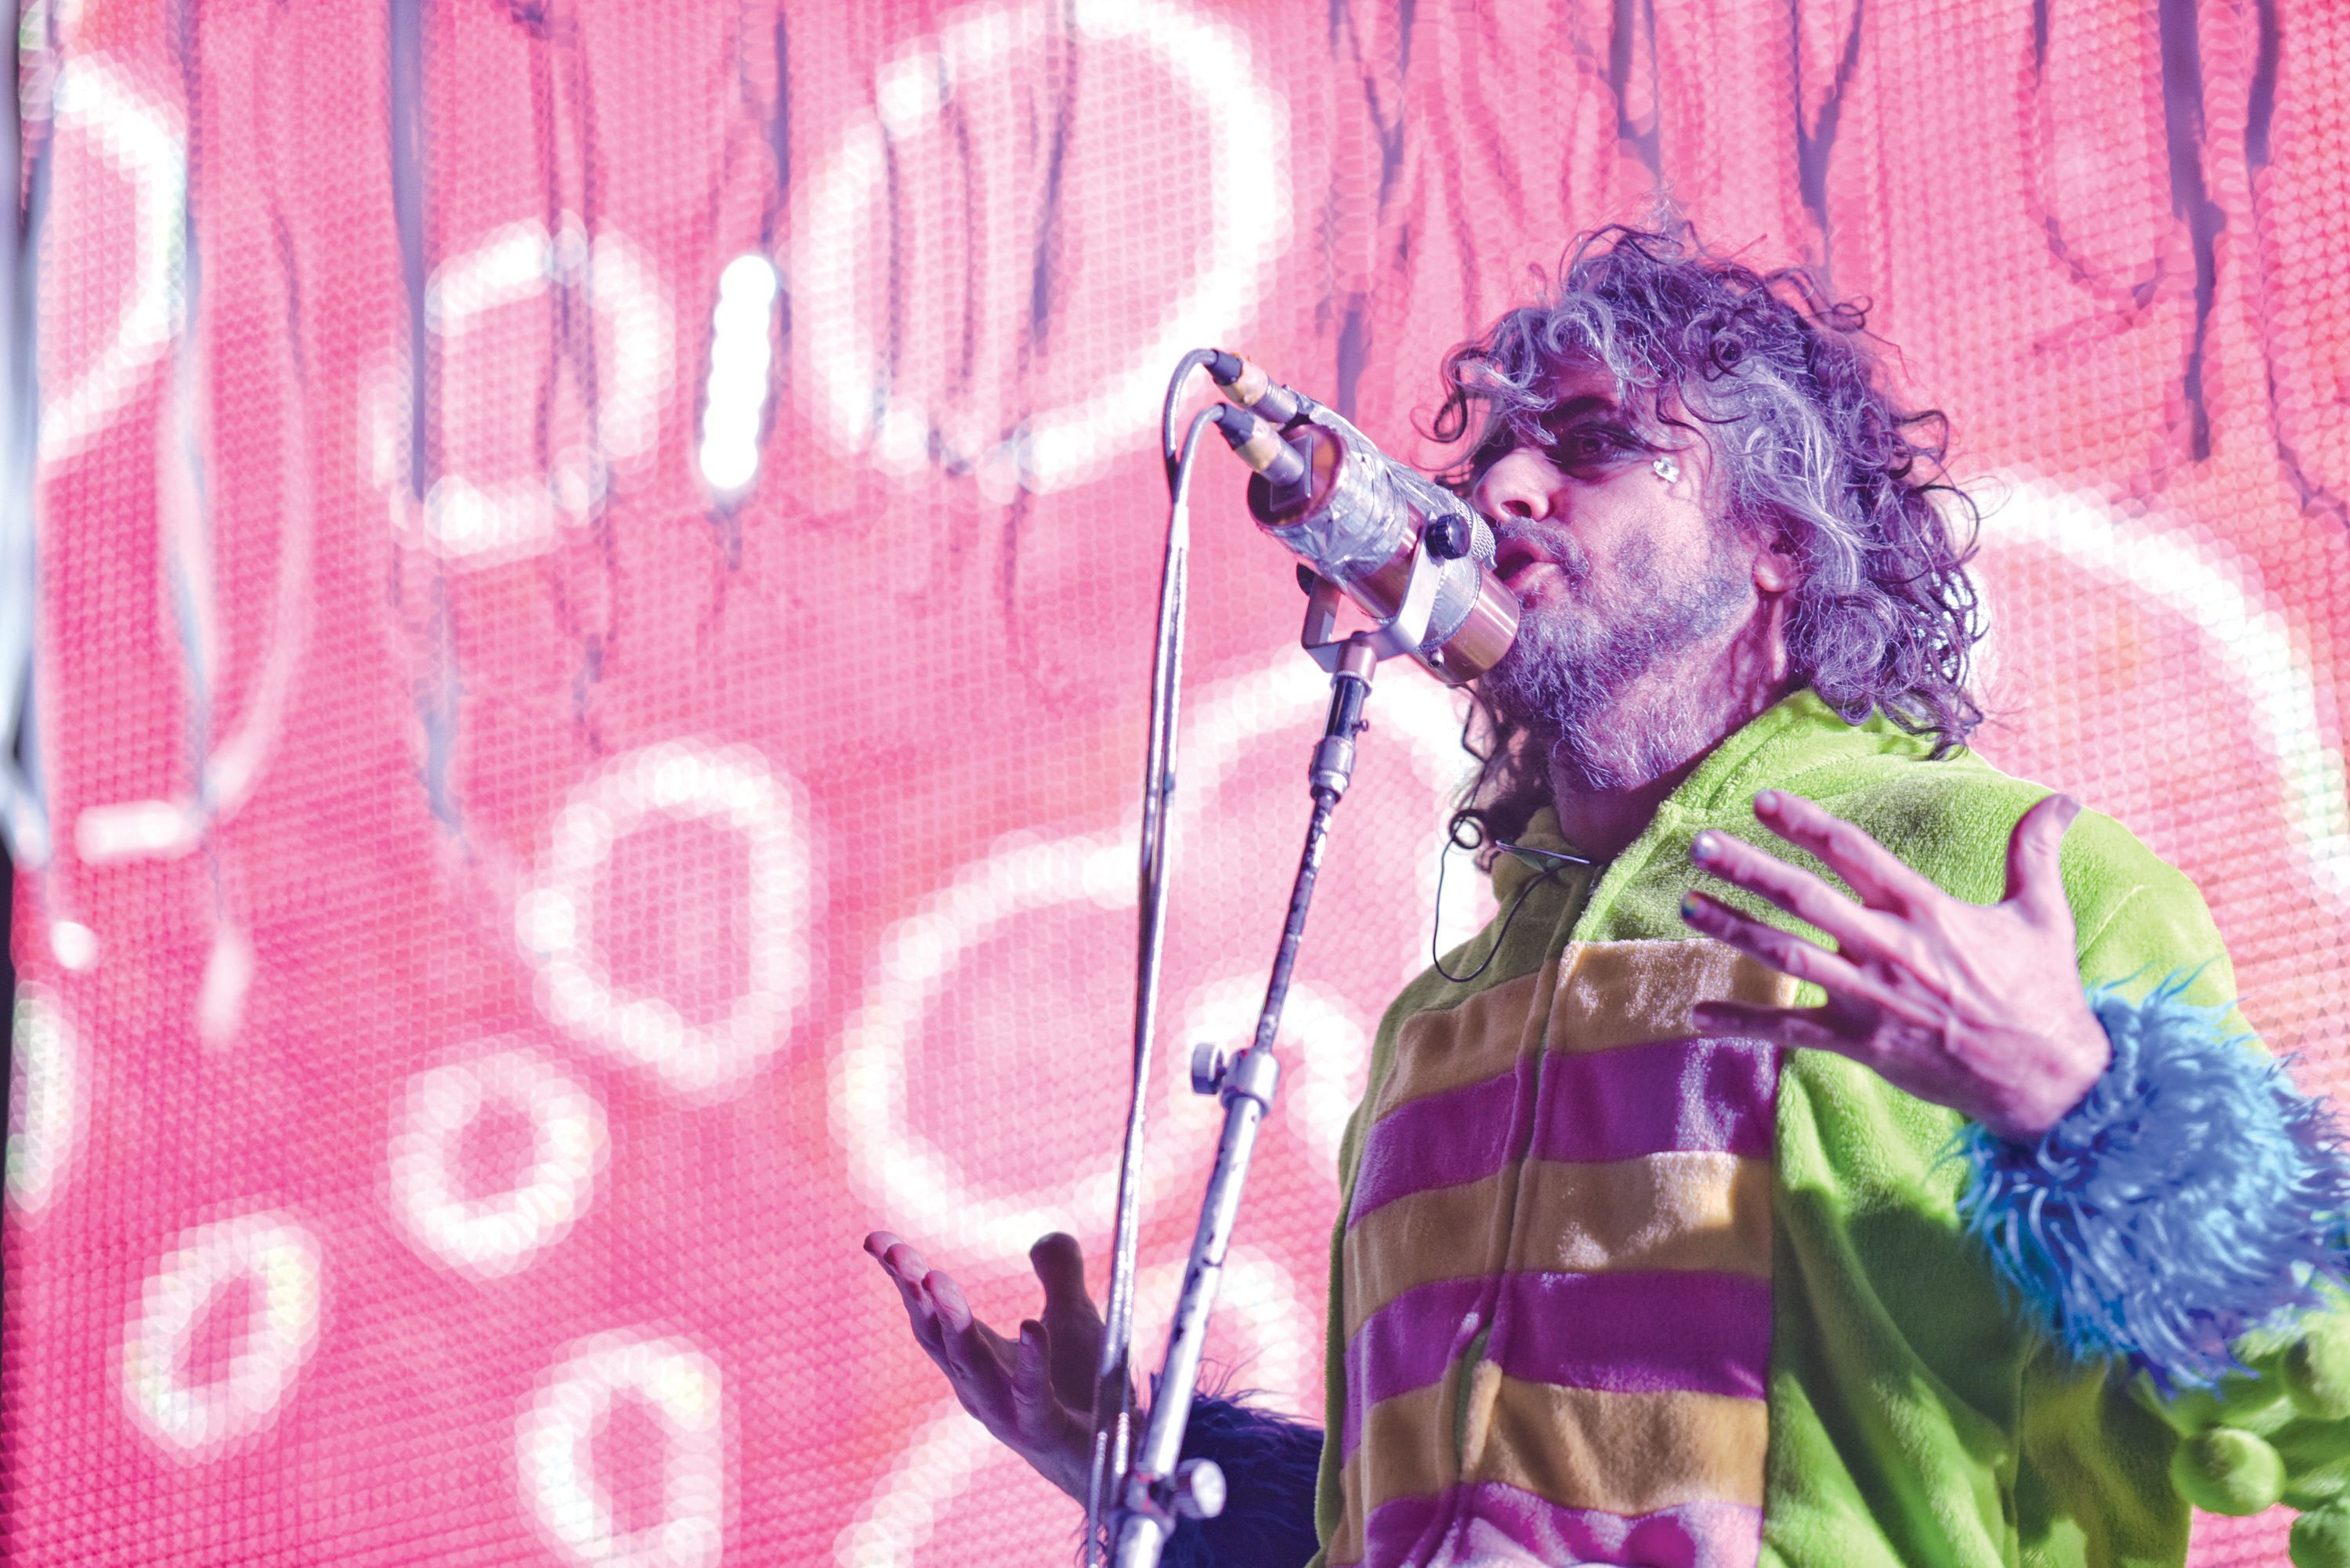 The Flaming Lips live in front of pink LED wall.